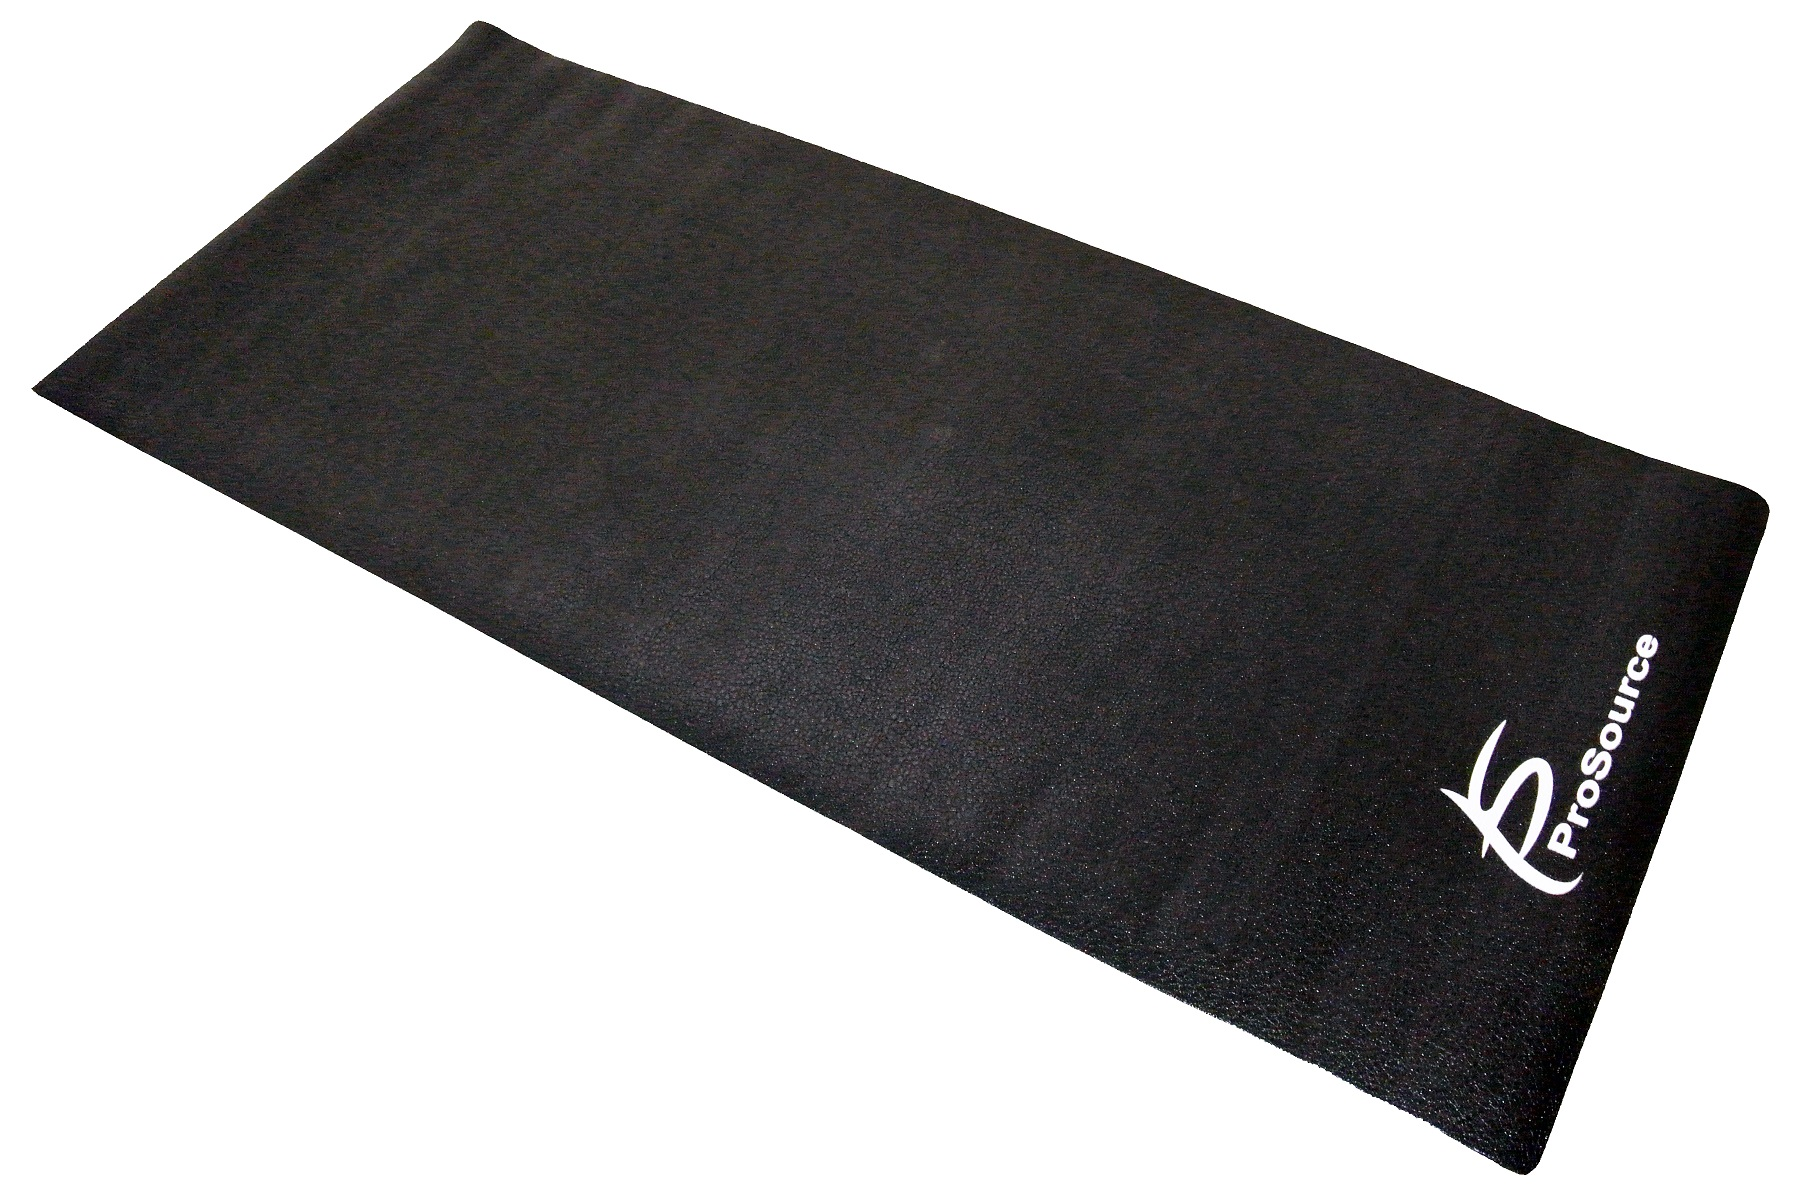 ProSource Exercise Equipment & Treadmill Mat High Density PVC Floor Protector, 3 x 6.5-feet by ProSource